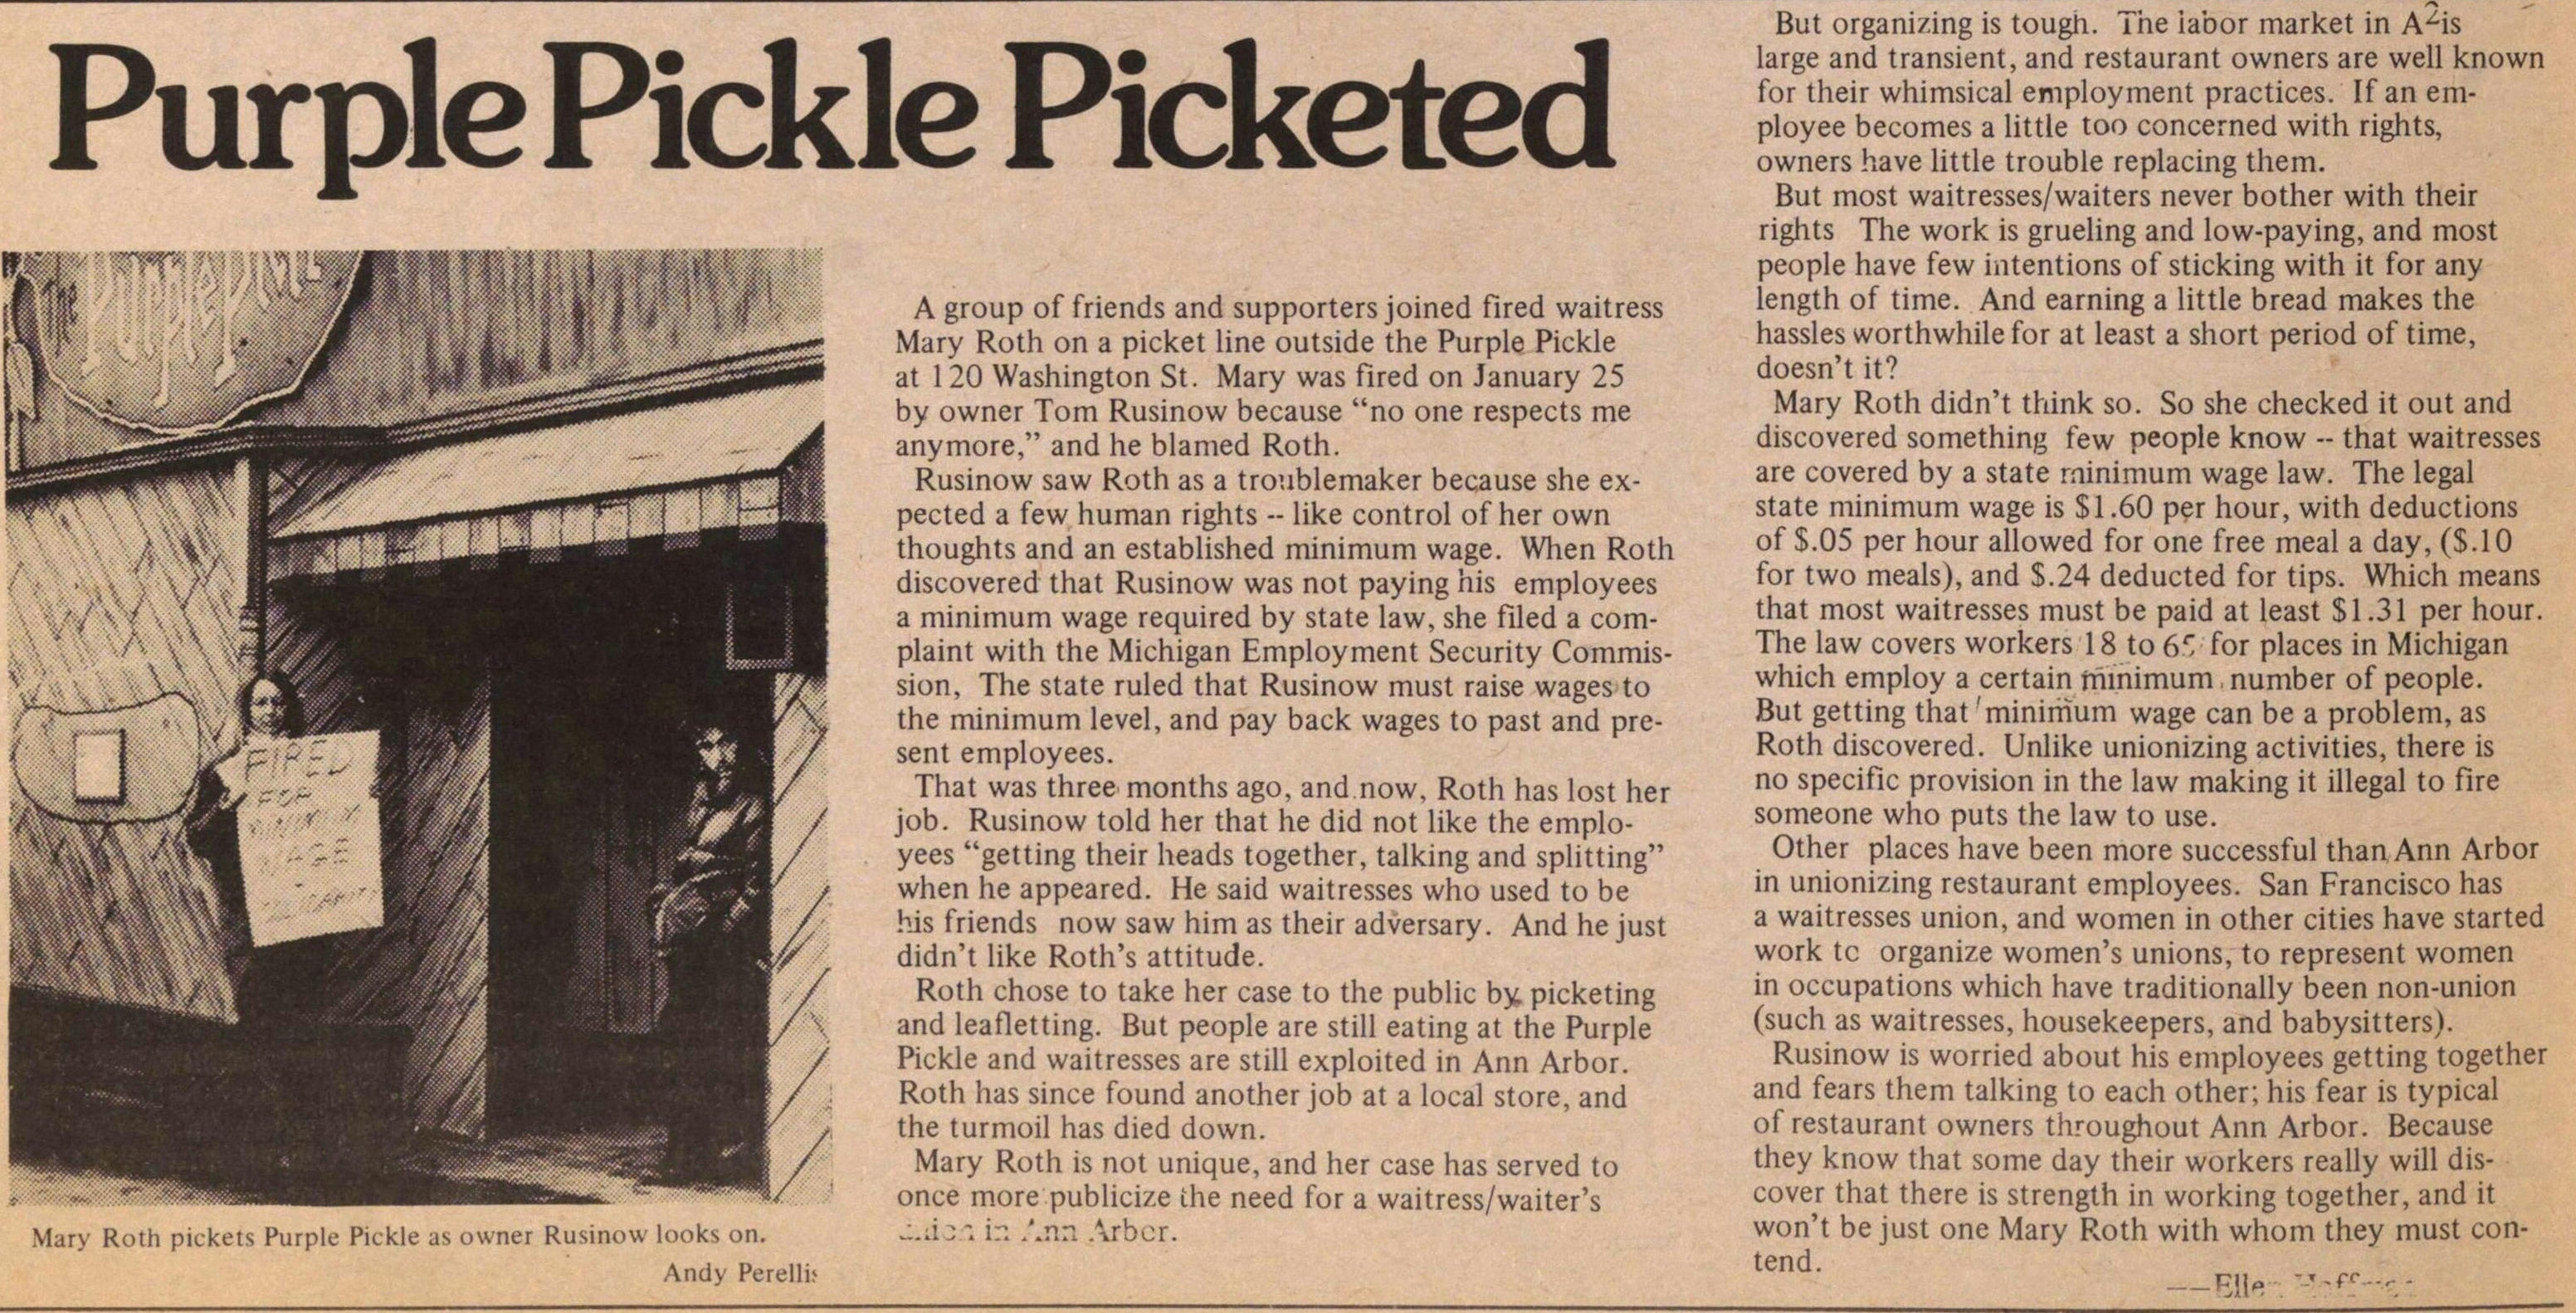 Purple Pickle Picketed image